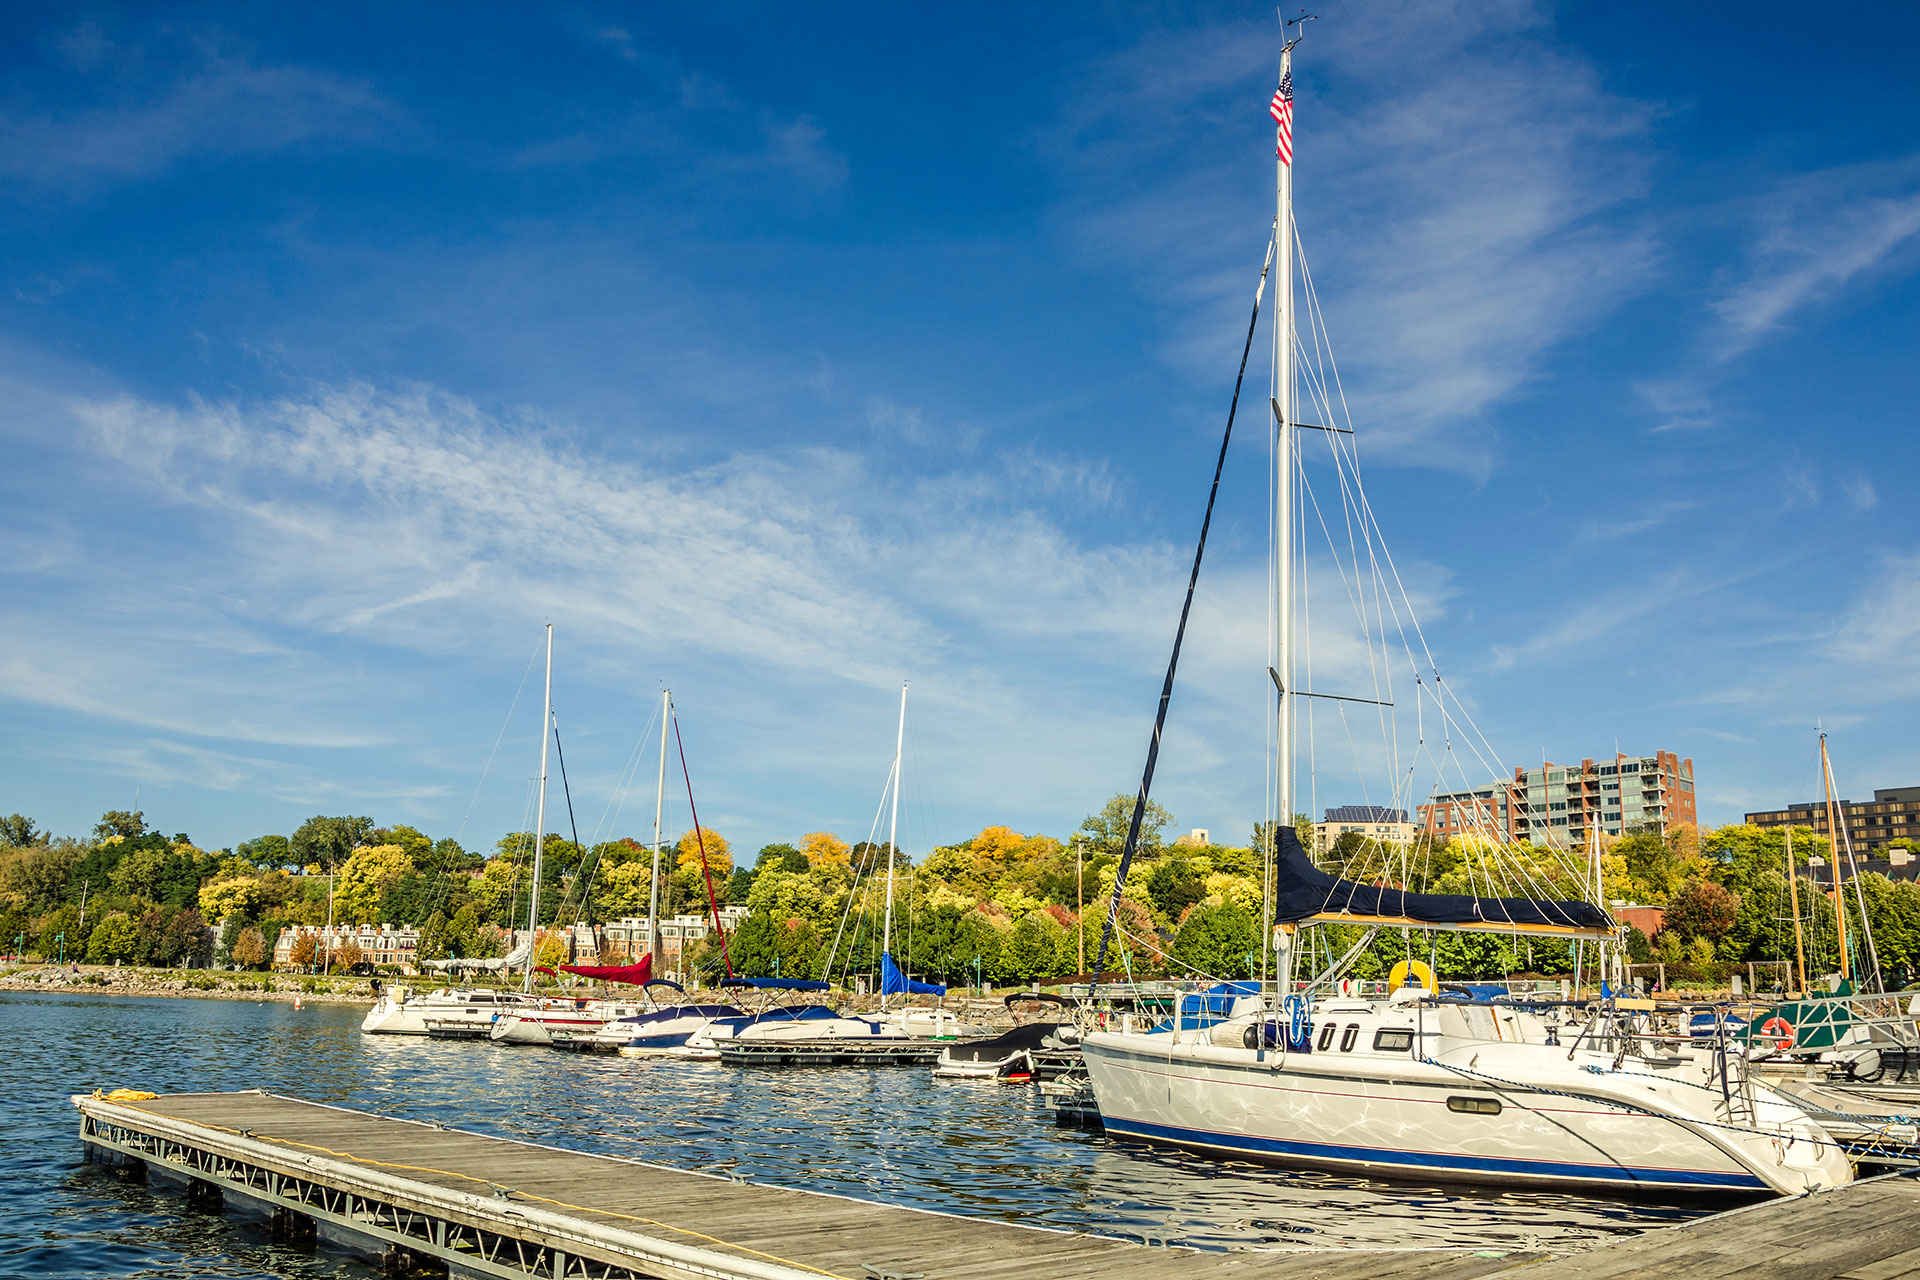 boats on a dock in Lake Champlain, Vermont; Courtesy of Albert Pego/Shutterstock.com